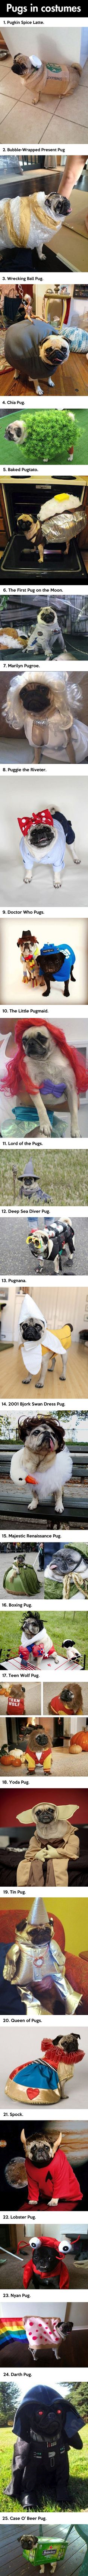 Top 25 Pugs In Costumes